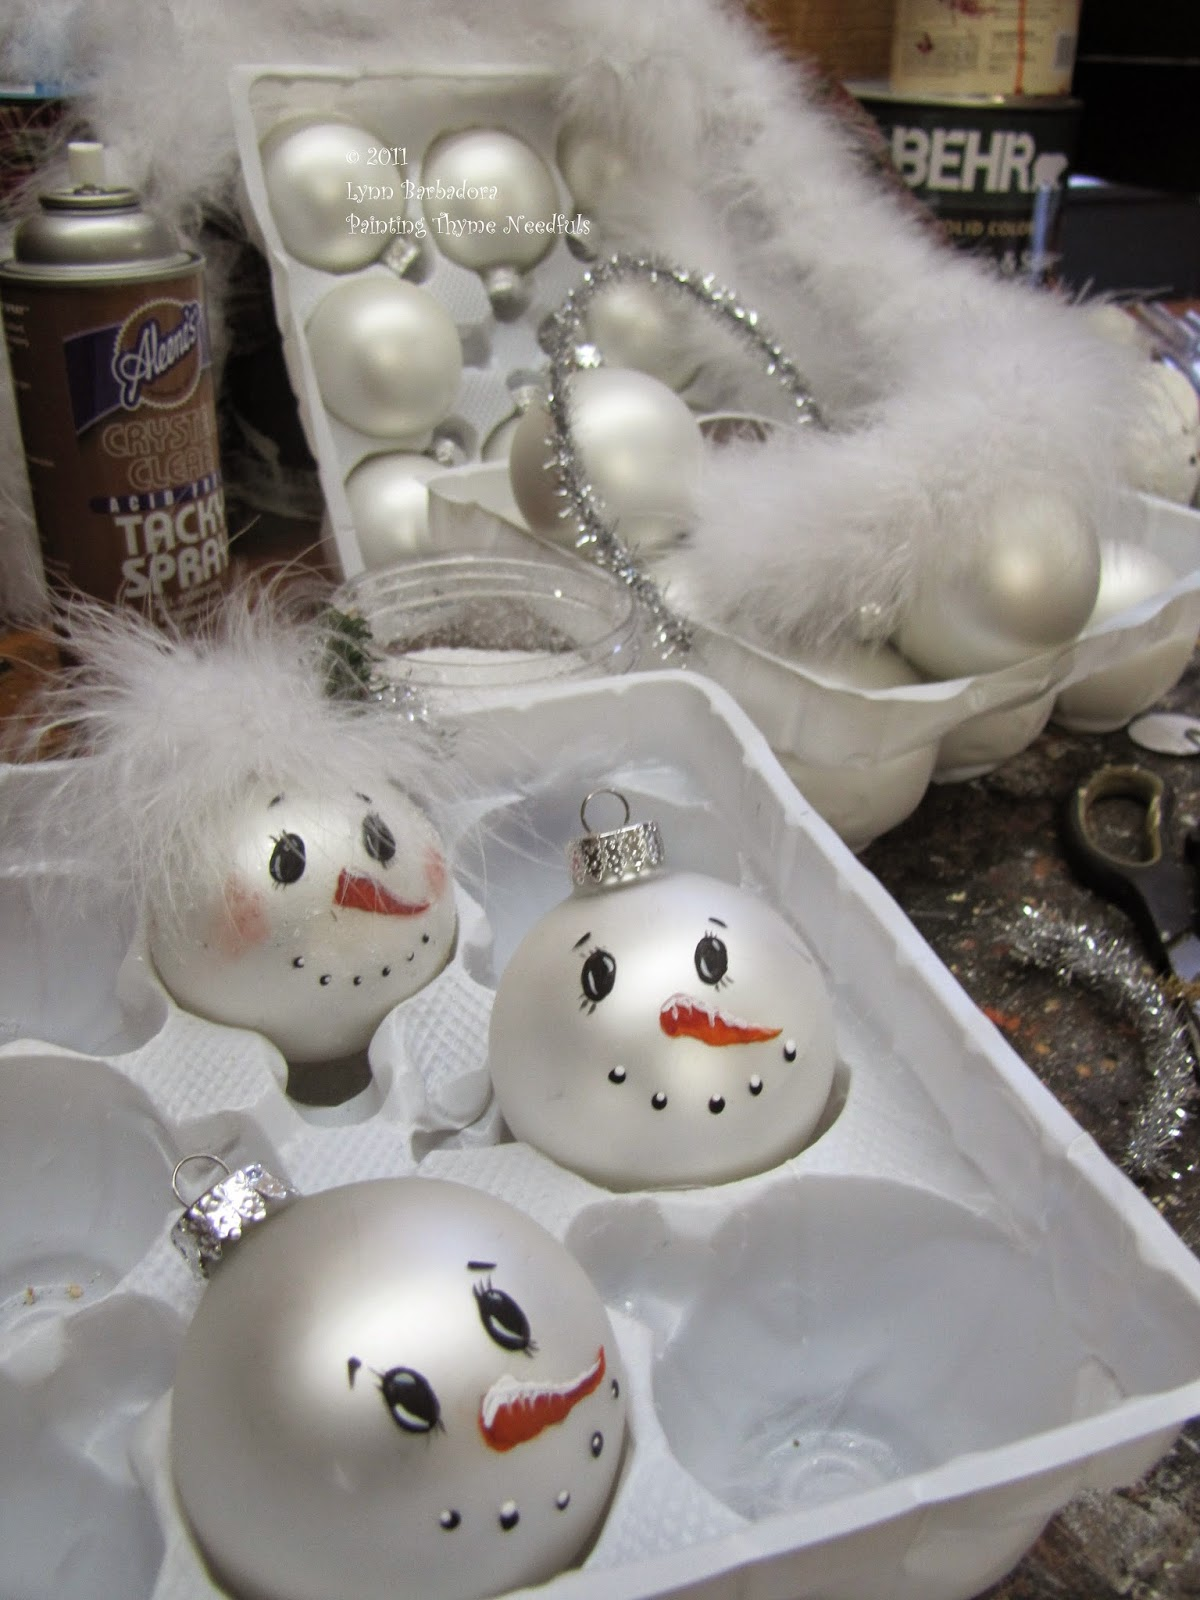 Painting thyme needfuls do you believe in magic for How to paint snowmen